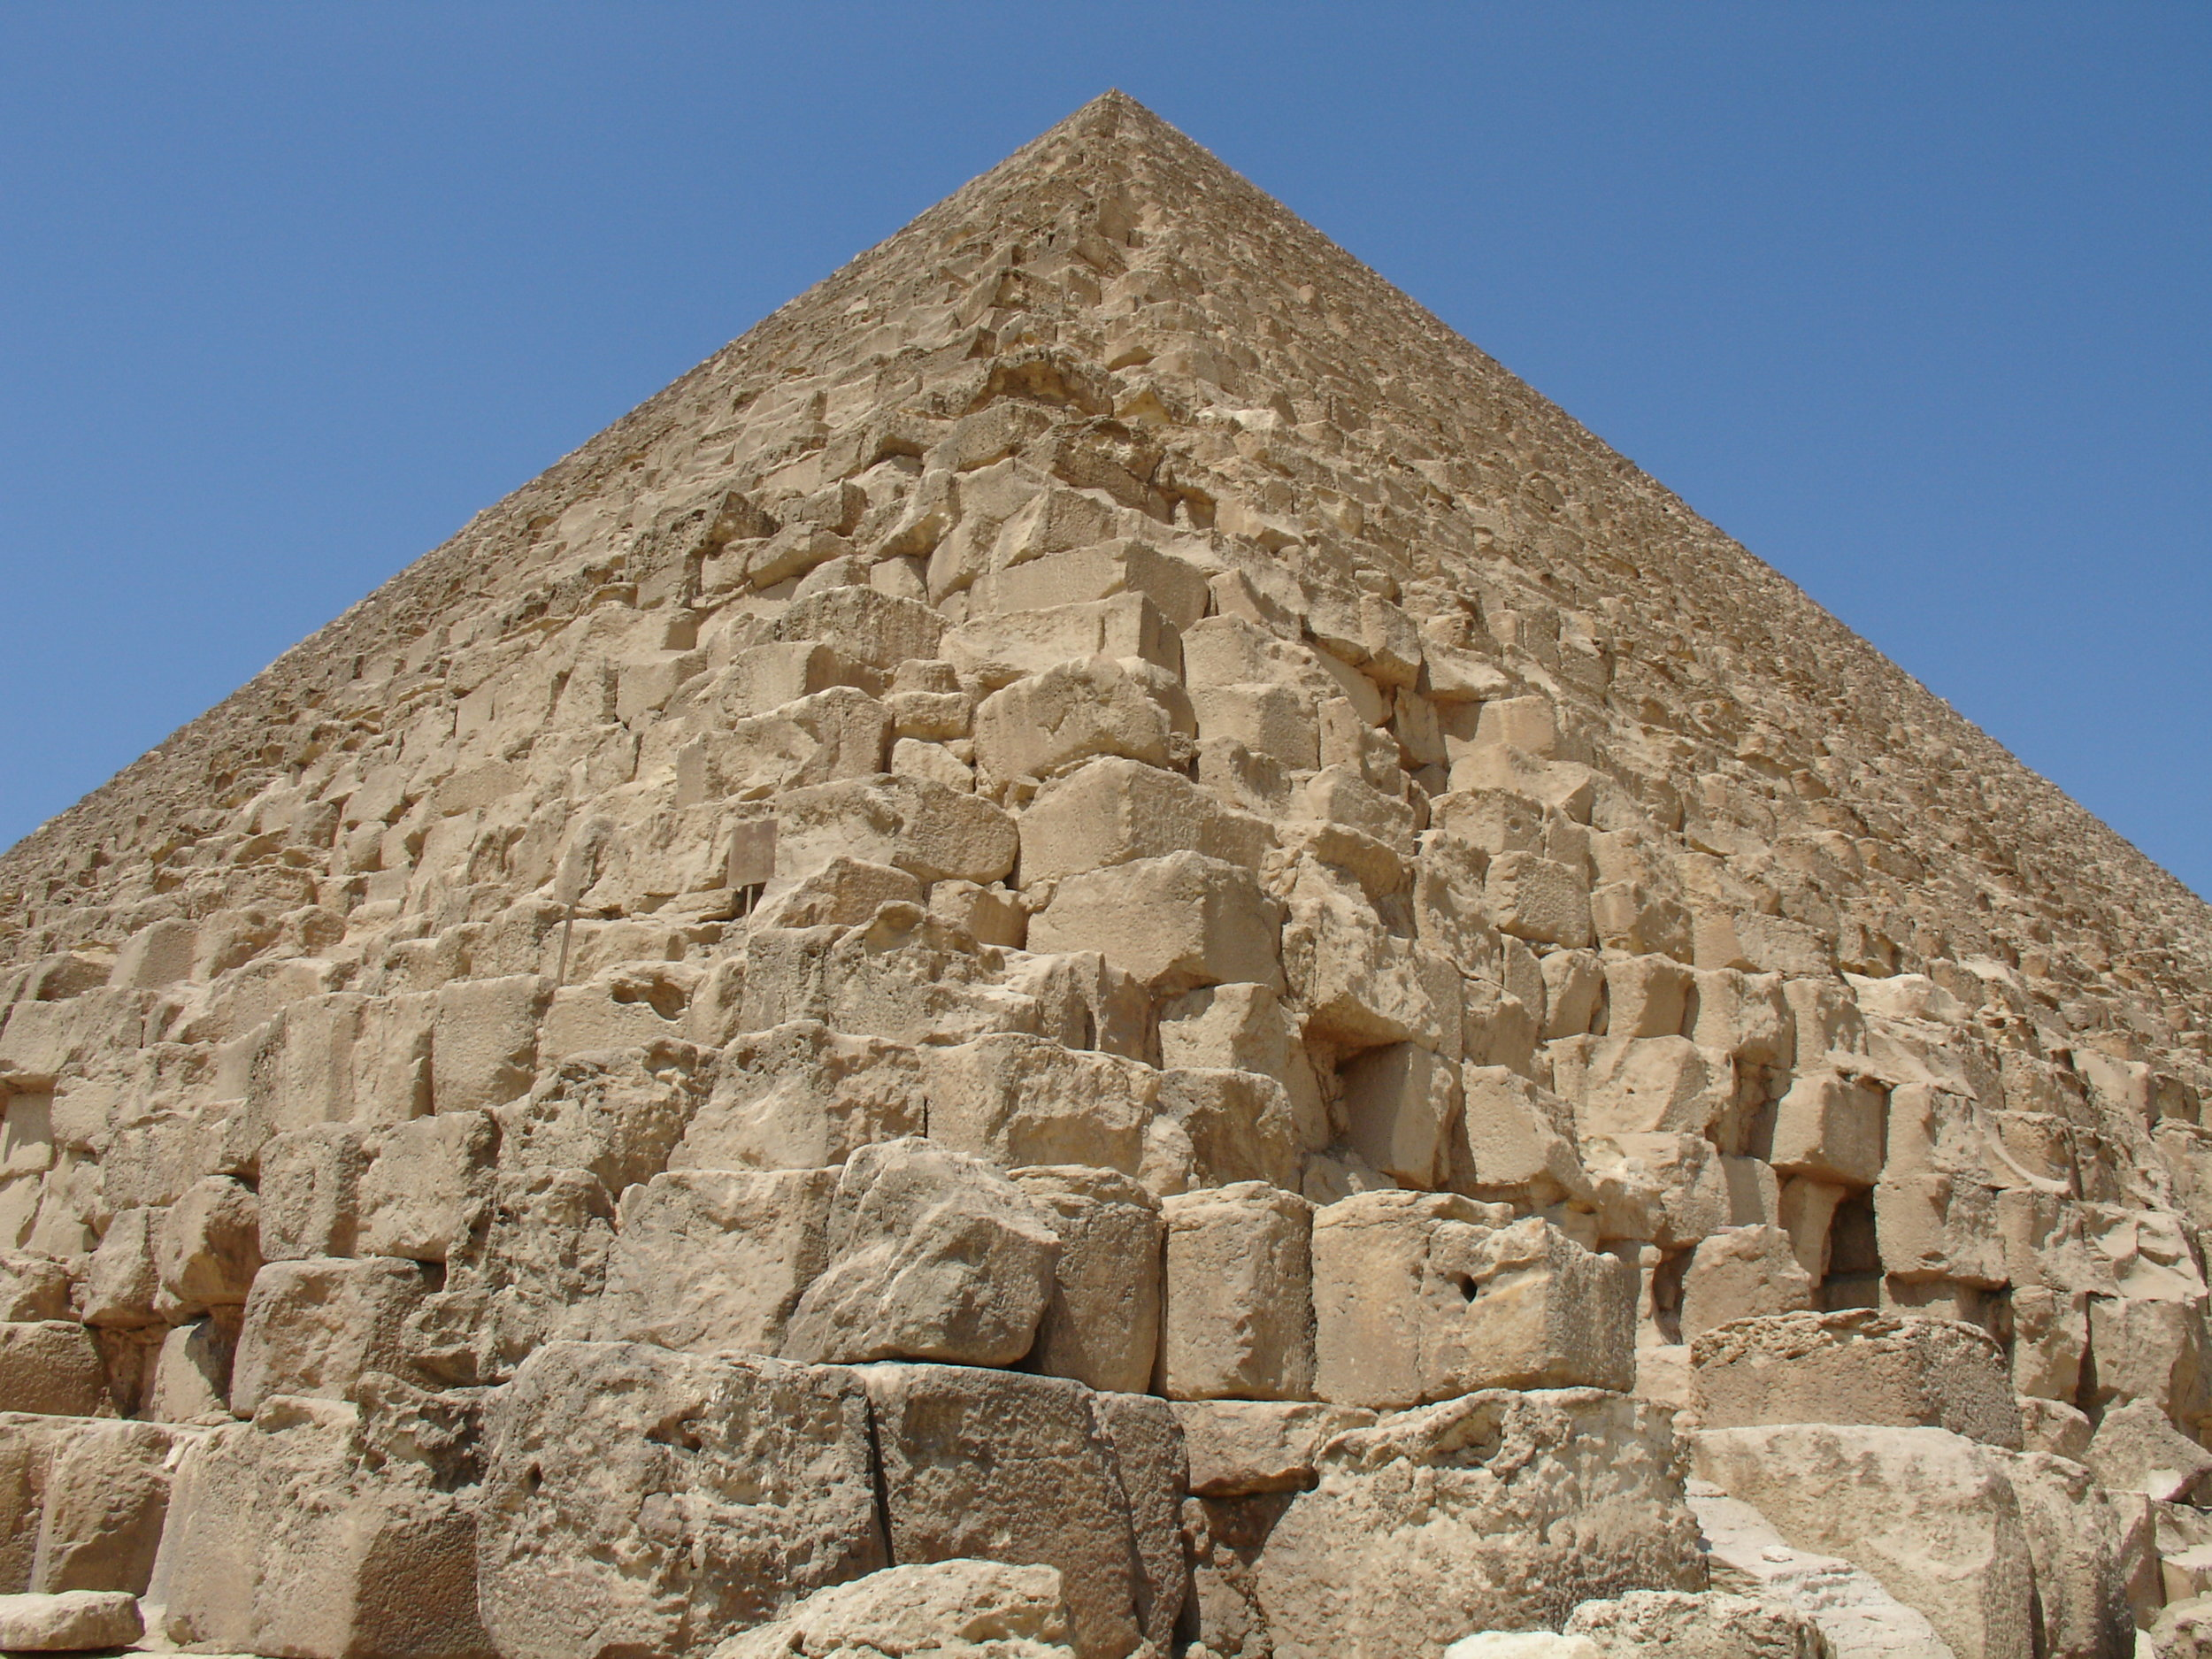 Great_Pyramid_of_Giza_edge.jpg